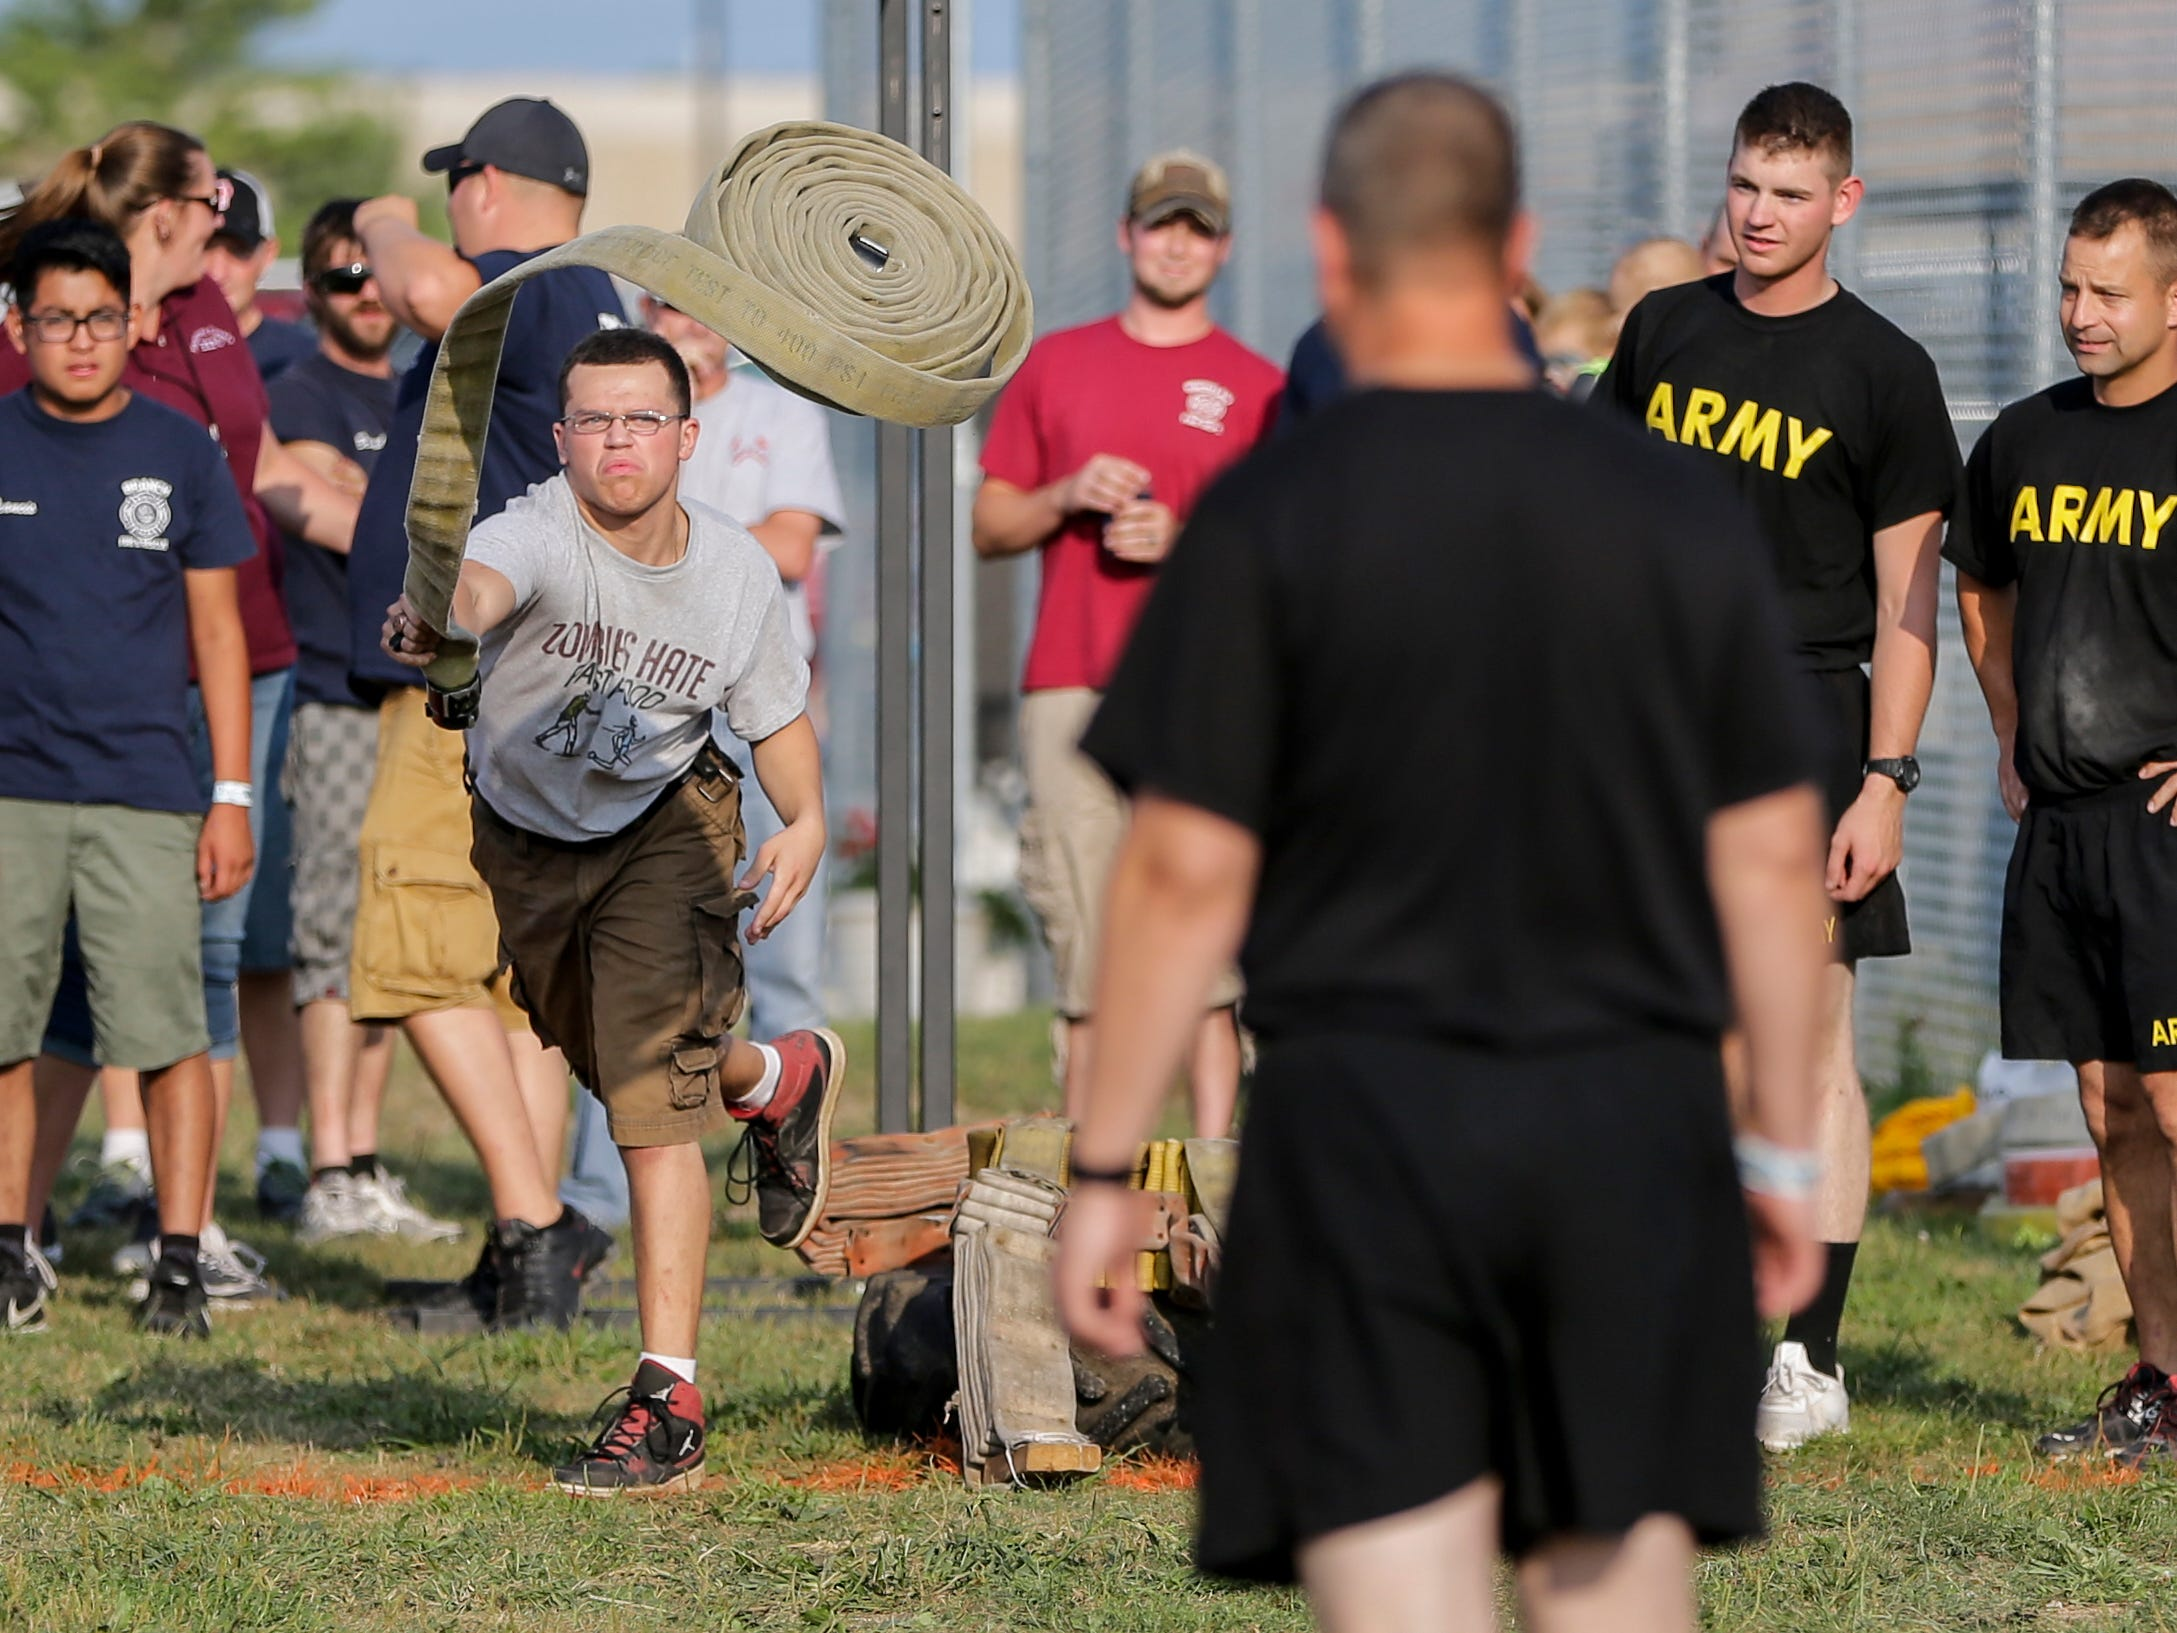 Pvt. Erik Janssen of team Army participates in a fire hose rolling contest at the Manitowoc County Fair Saturday, August 25, 2018, in Manitowoc, Wis. Josh Clark/USA TODAY NETWORK-Wisconsin